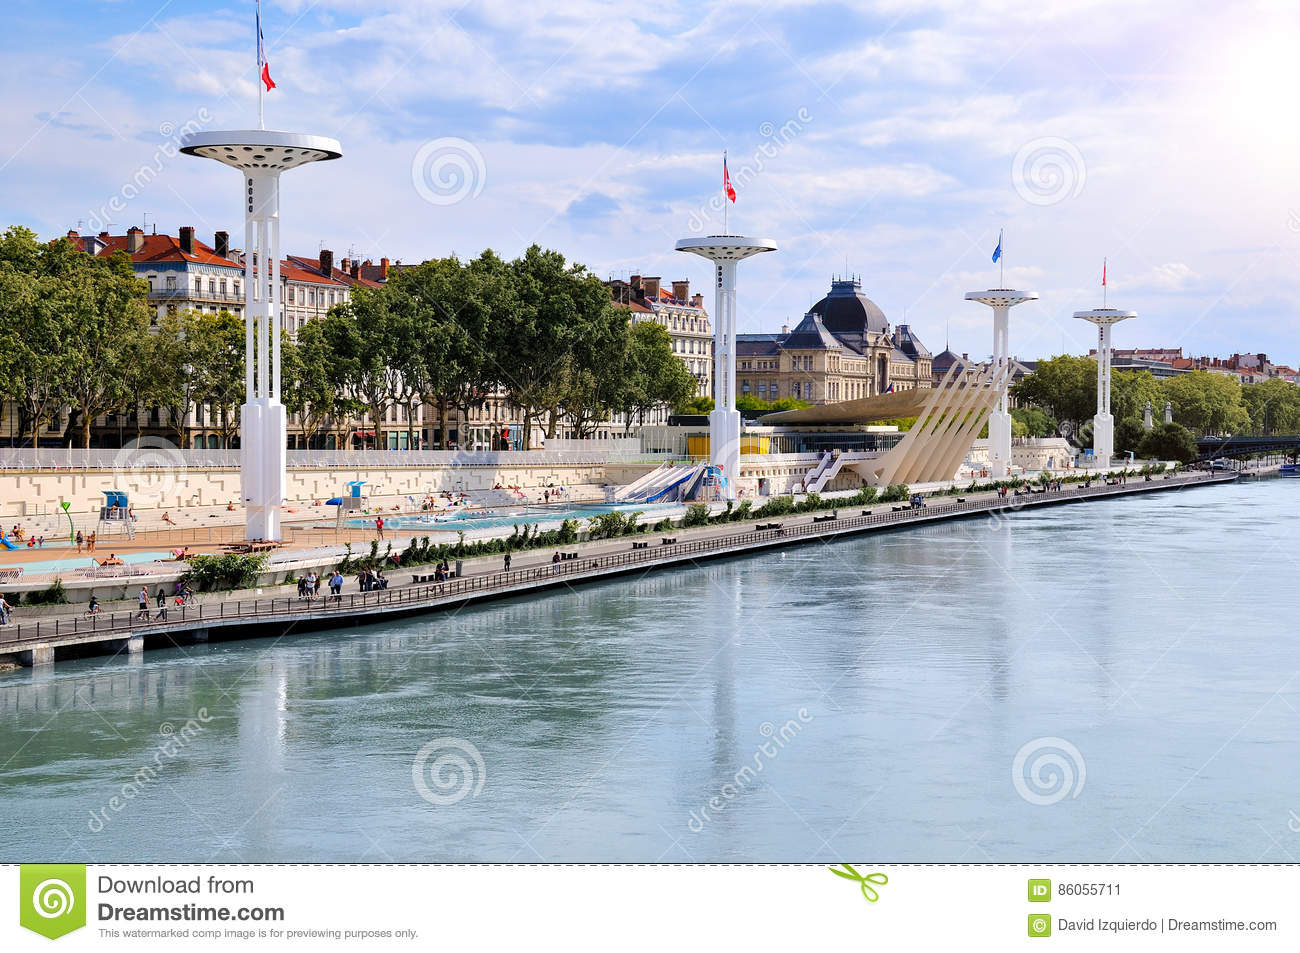 Municipal Swimming Pools Of Lyon On The Rhone River France Stock Photo Image 86055711